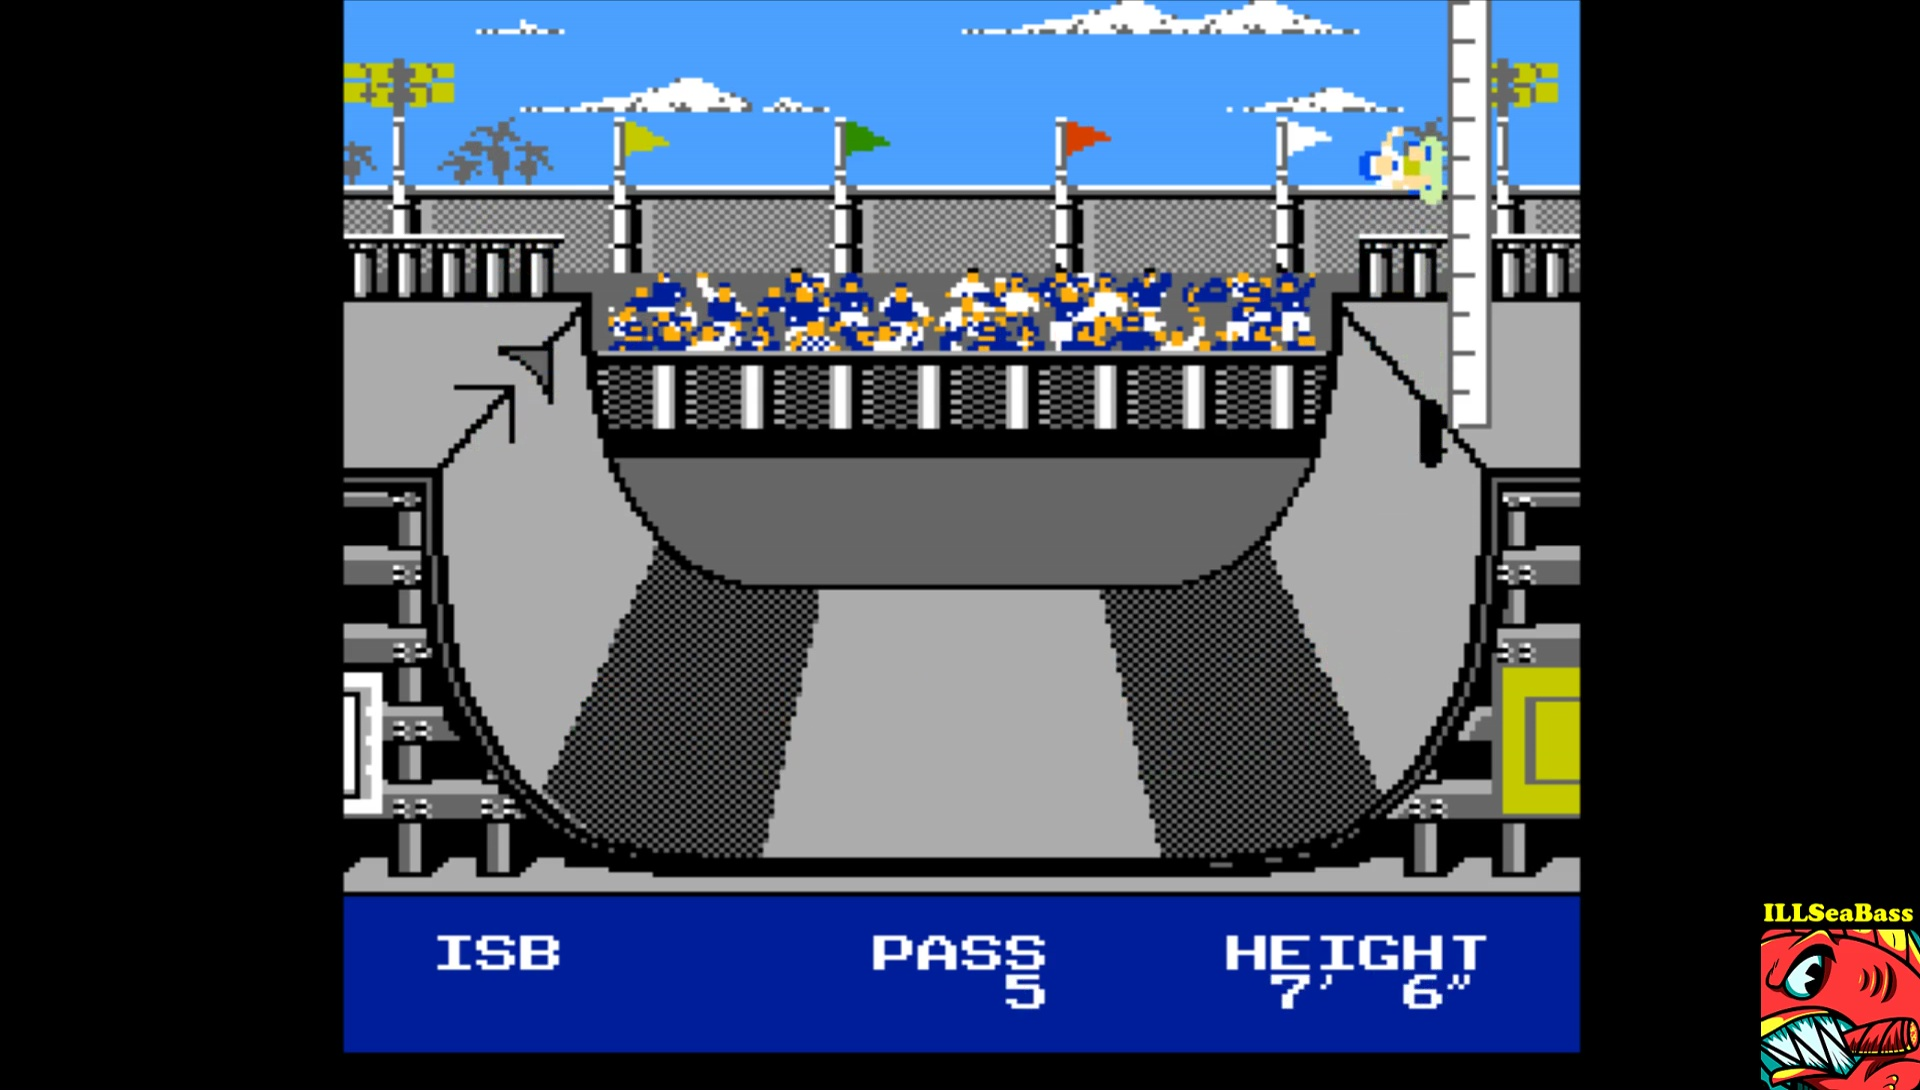 ILLSeaBass: Skate Or Die: Ramp High Jump [Inches] (NES/Famicom Emulated) 90 points on 2017-04-13 00:13:13